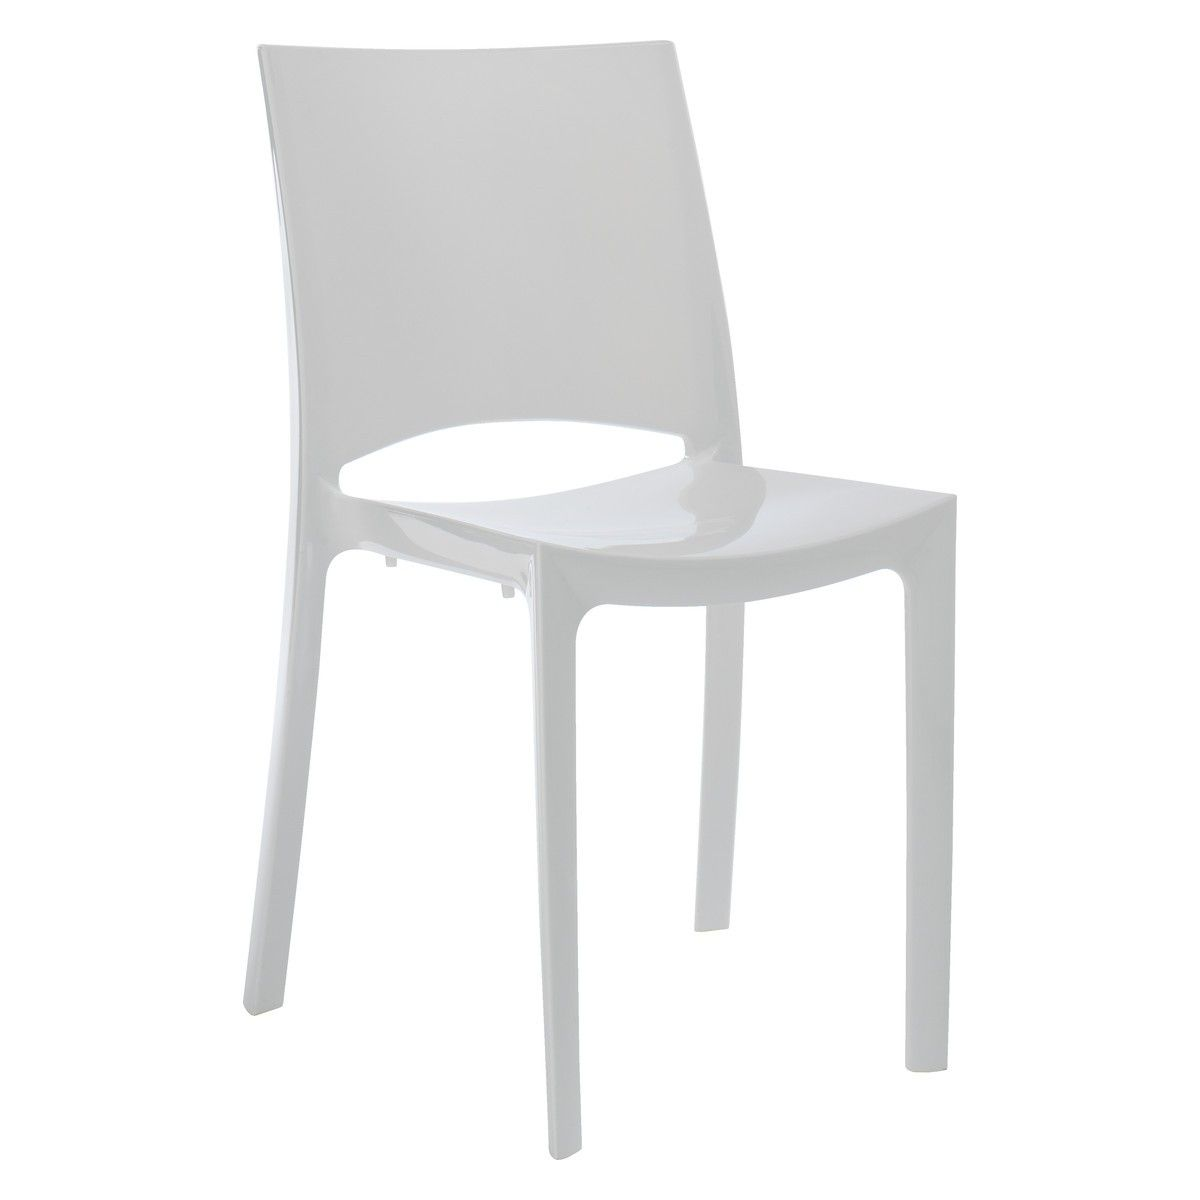 Verne white plastic stackable dining chair buy now at for Stackable dining room chairs